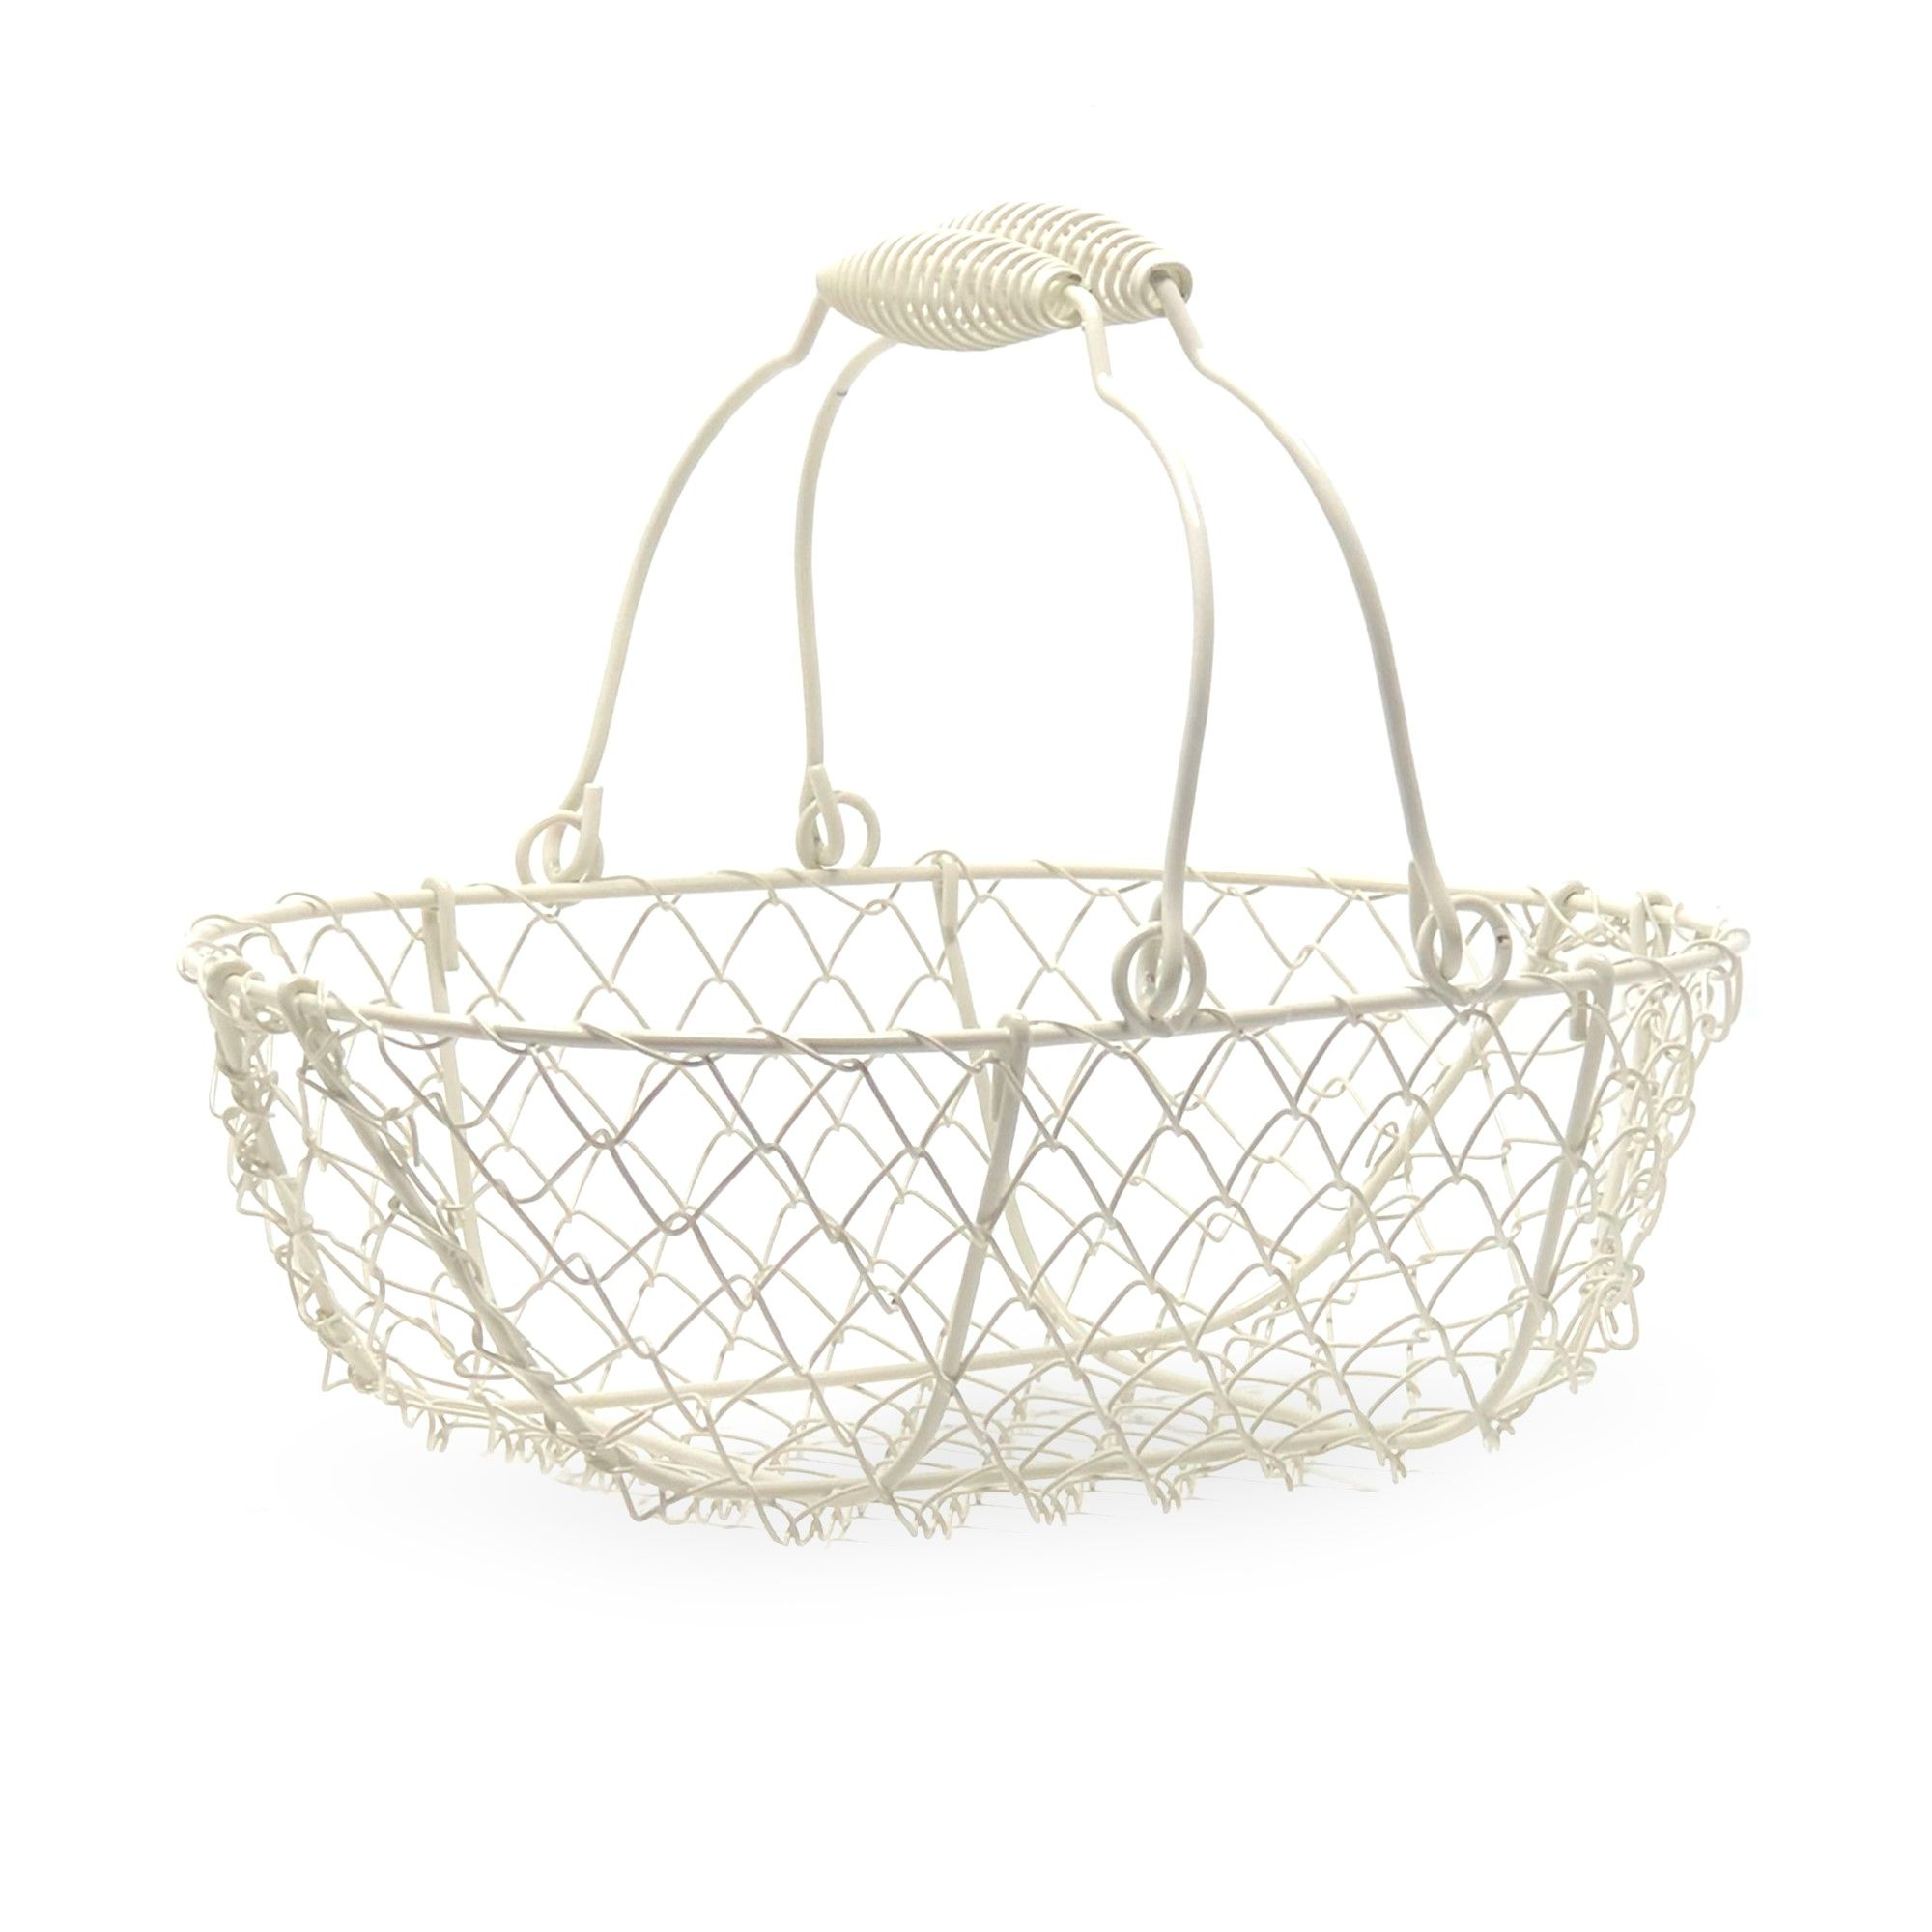 Stella White Mini Wire Oblong Basket 9in Lucky Clover Wholesale Gifts Basket